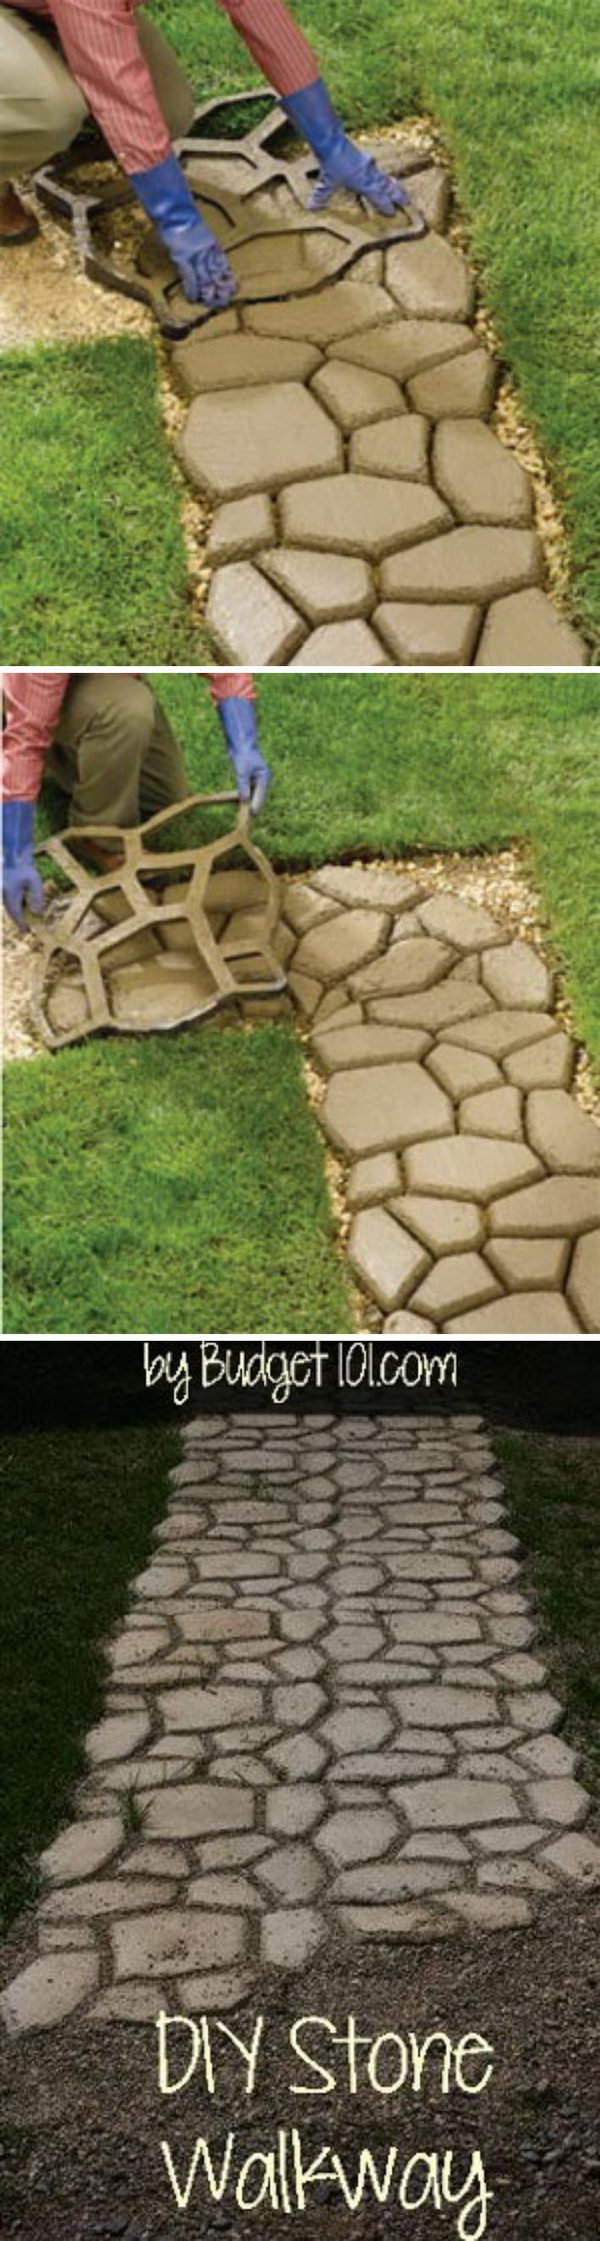 DIY Faux Stone Walkway With Concrete